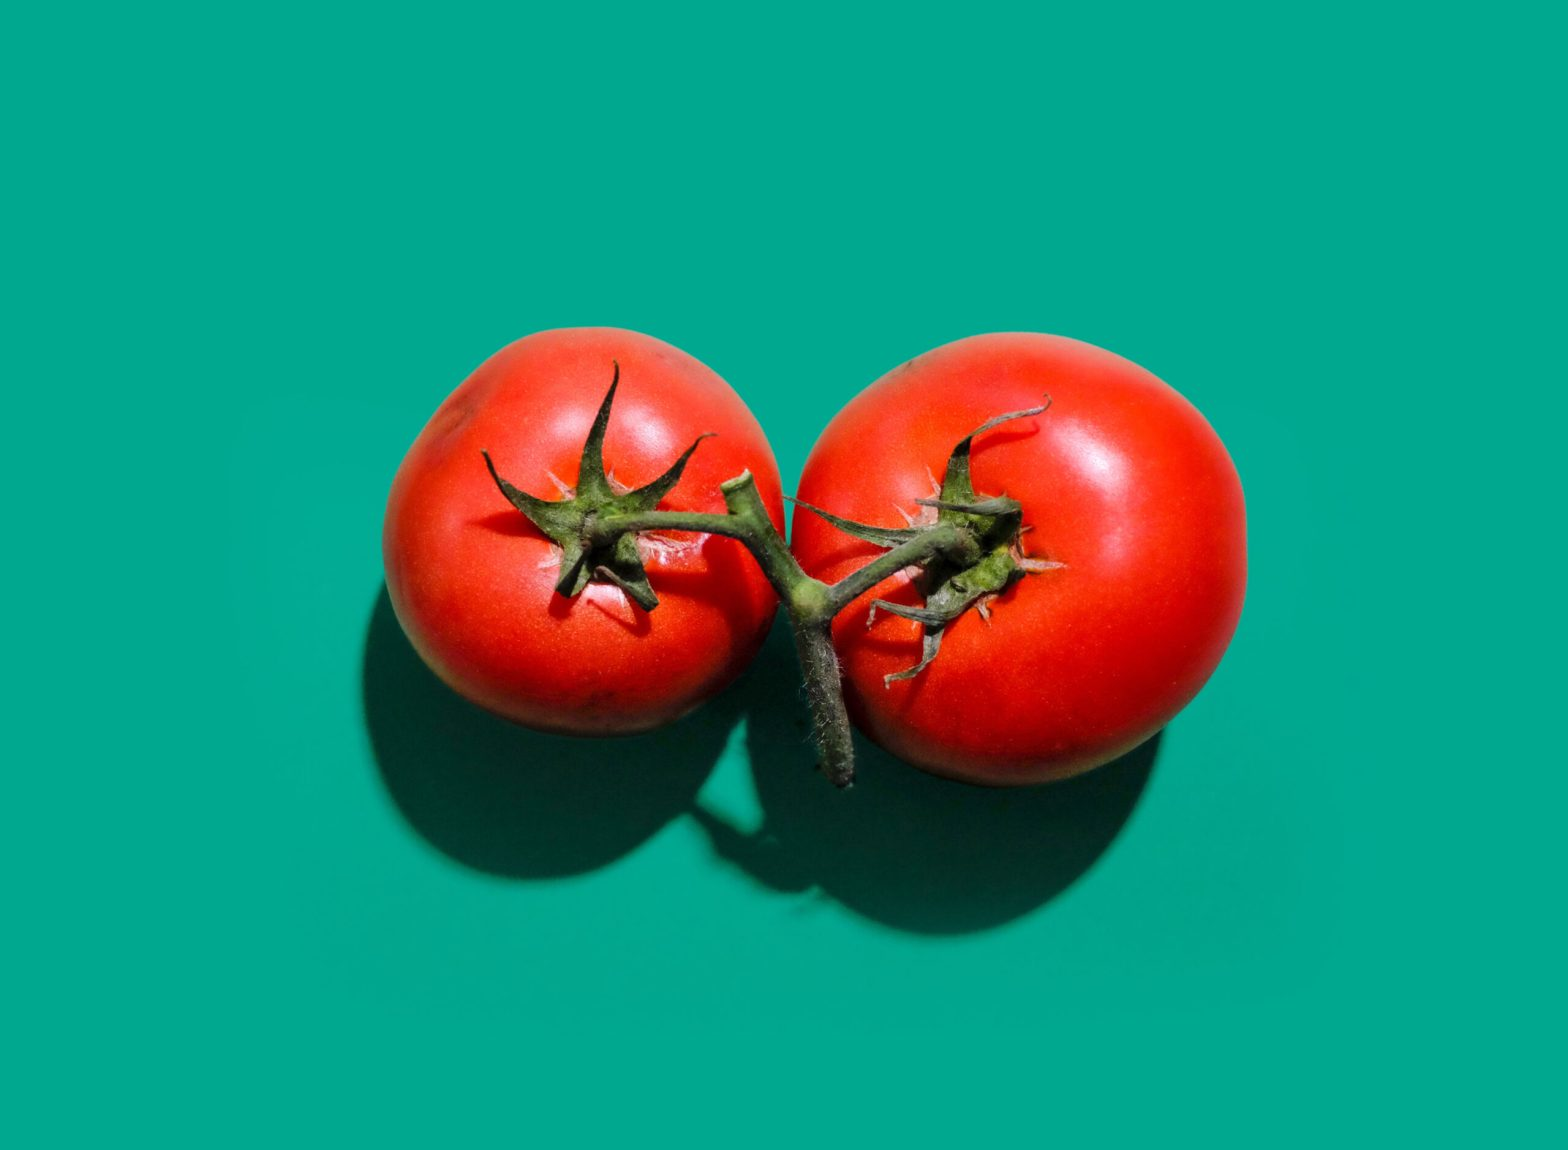 Image Contains: Two tomatoes on a teal background. This article is about the Pomodoro Technique.